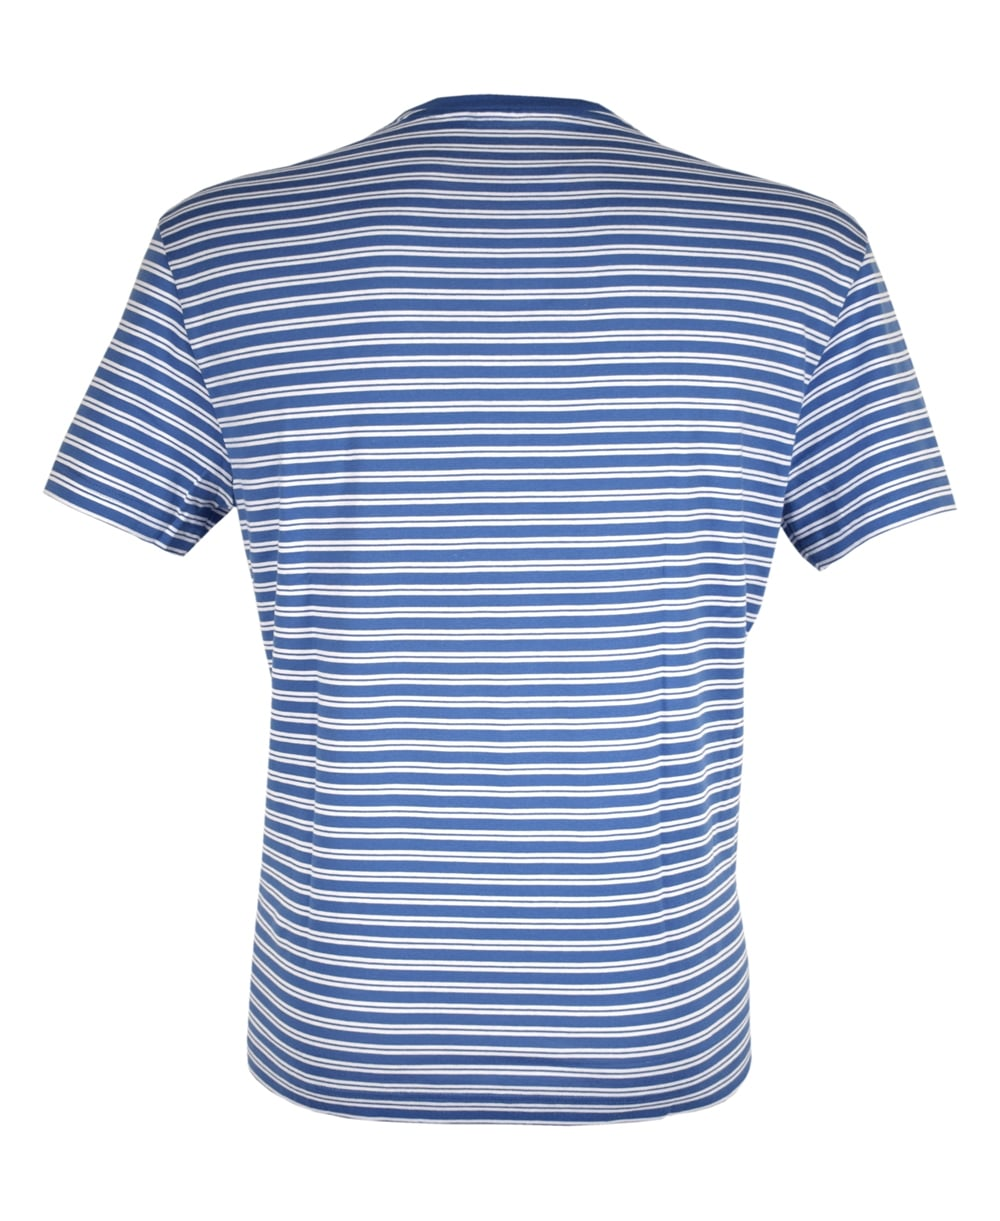 Blue white stripe crew neck th1889 t shirt for Crew neck white t shirt